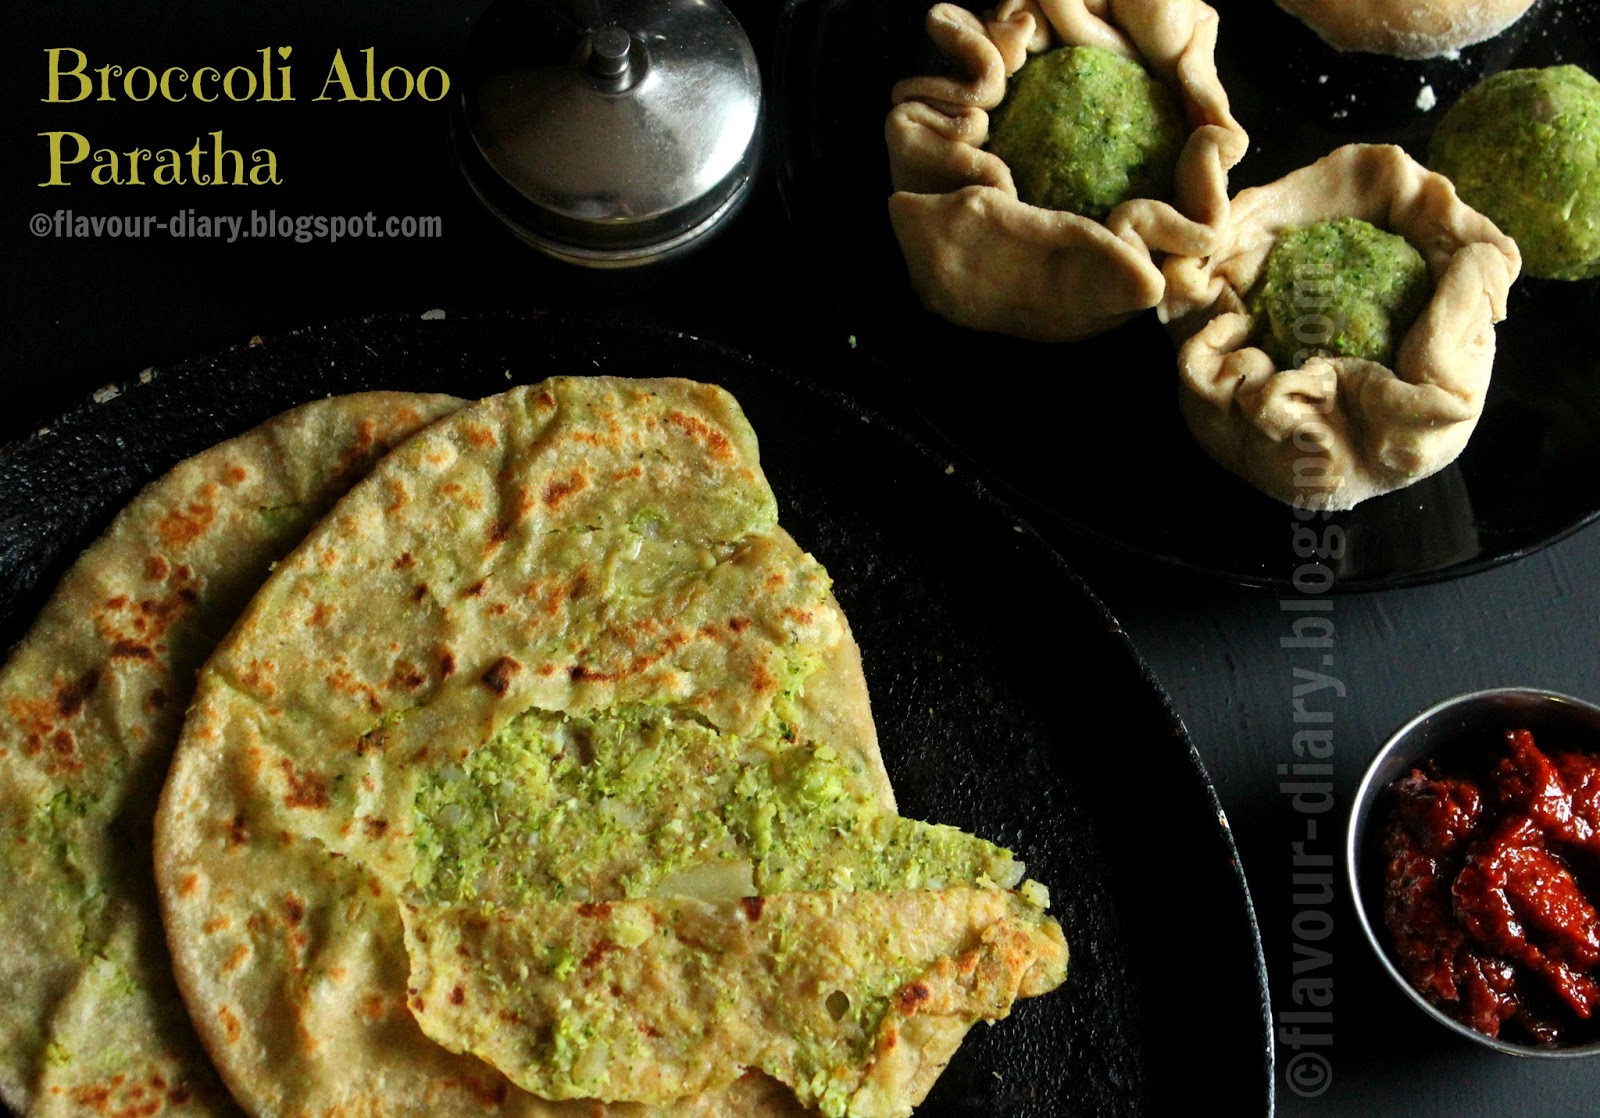 Broccoli Aloo Paratha Recipe